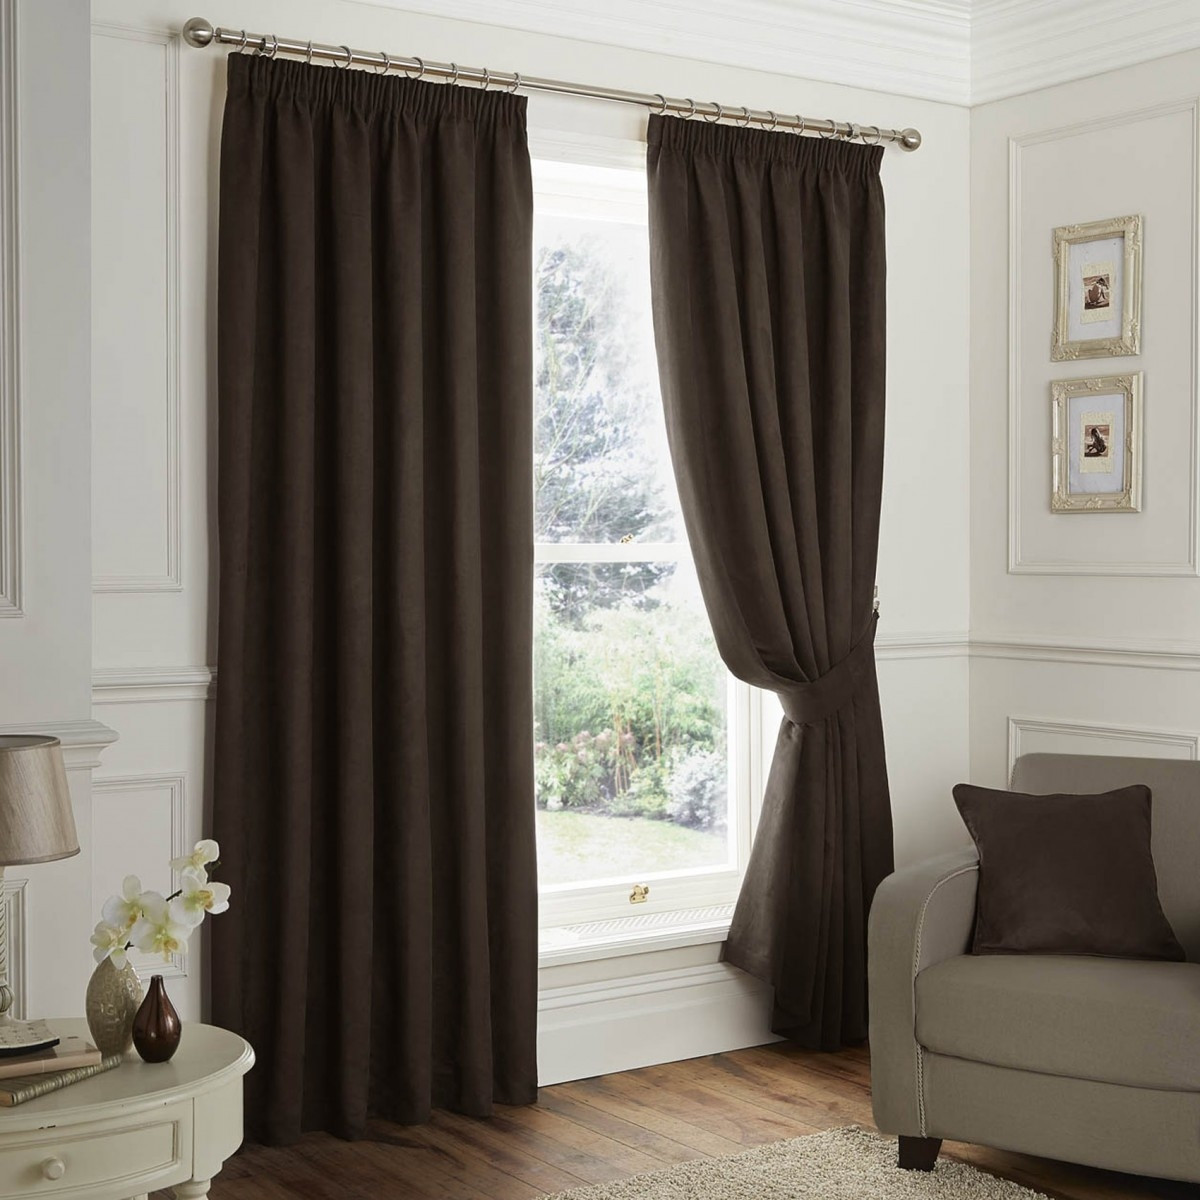 Faux Suede Blackout Chocolate Pencil Pleat Curtains Dove Mill Intended For Pencil Pleat Curtains (Image 3 of 15)